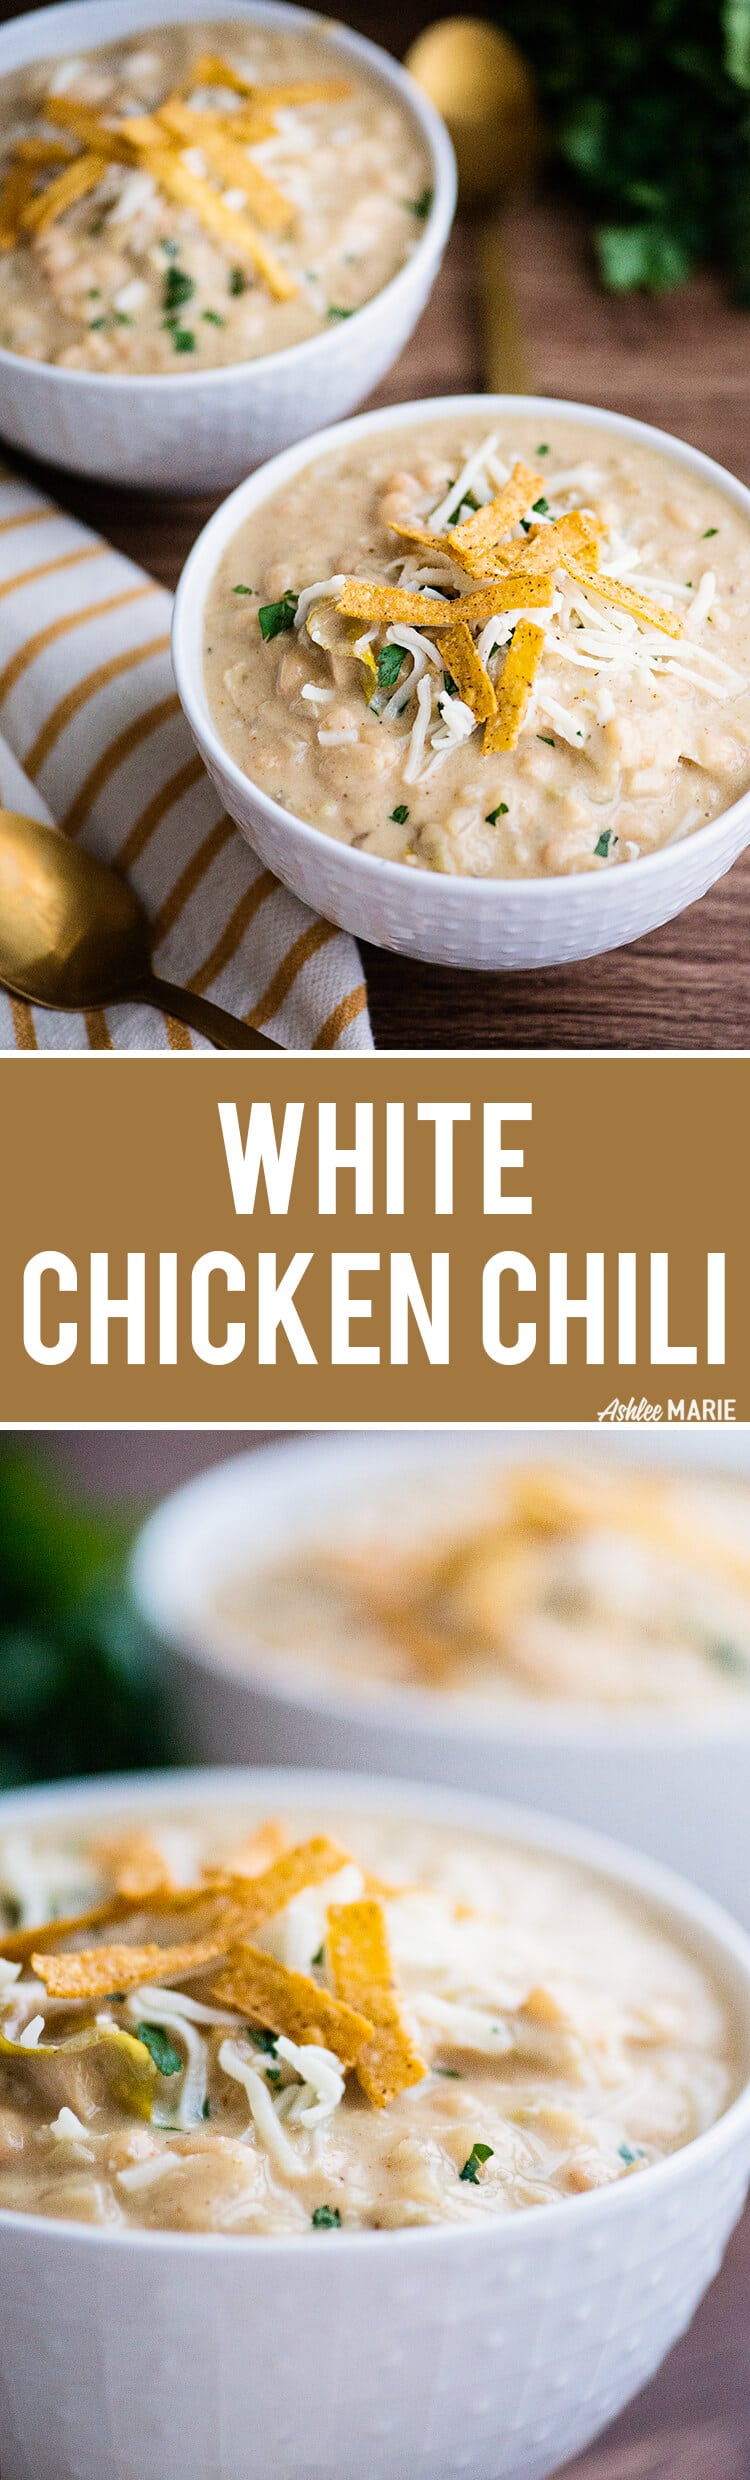 A creamy and spicy White Chicken Chili recipe with video | Ashlee Marie | Winter | Comfort Food | Chili | Soup | Chicken | #ashleemarie #comfortfood #chili #chicken #soup